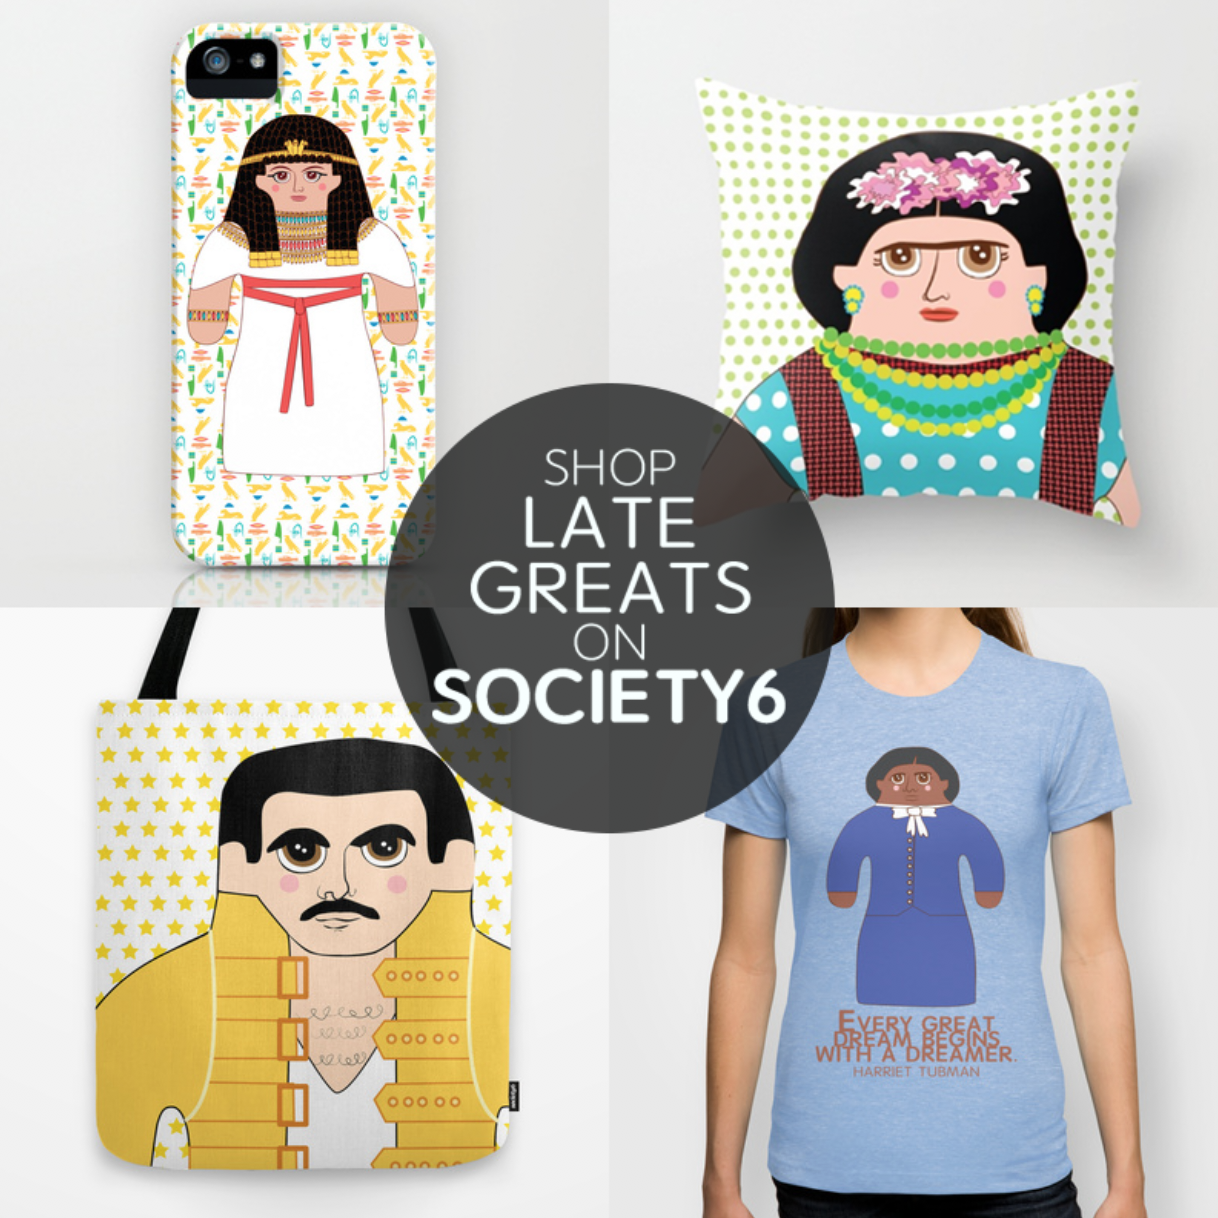 Shop LATE GREATS on  SOCIETY6